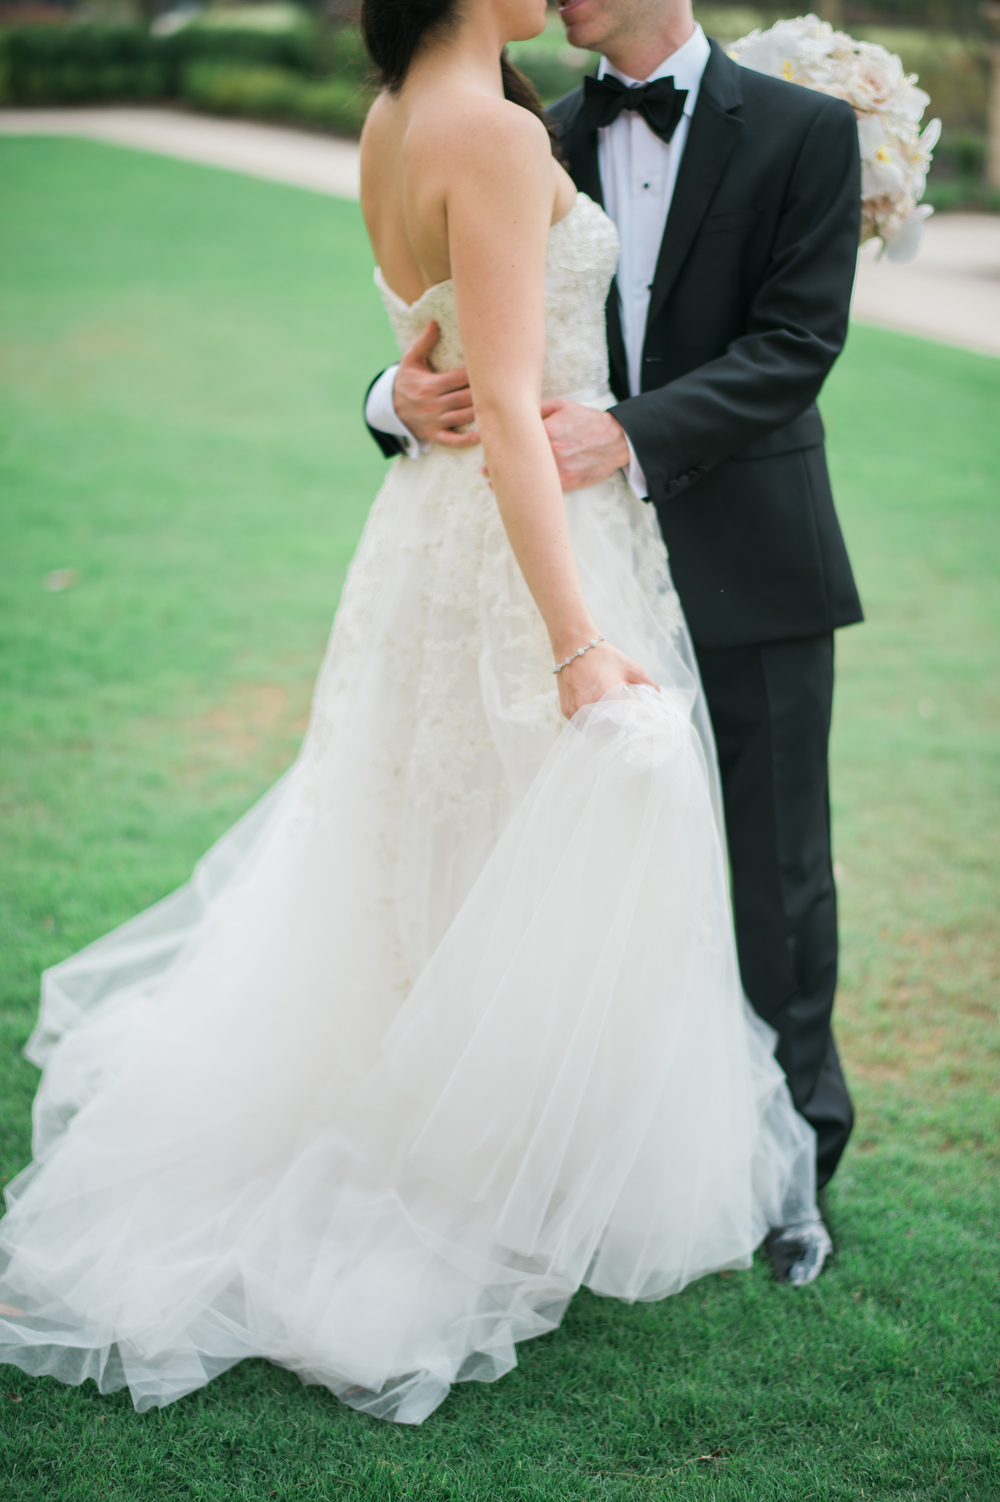 kristenweaver.com | Wedding at Four Seasons Resort Orlando at Walt Disney World Resort | Kristen Weaver Photography